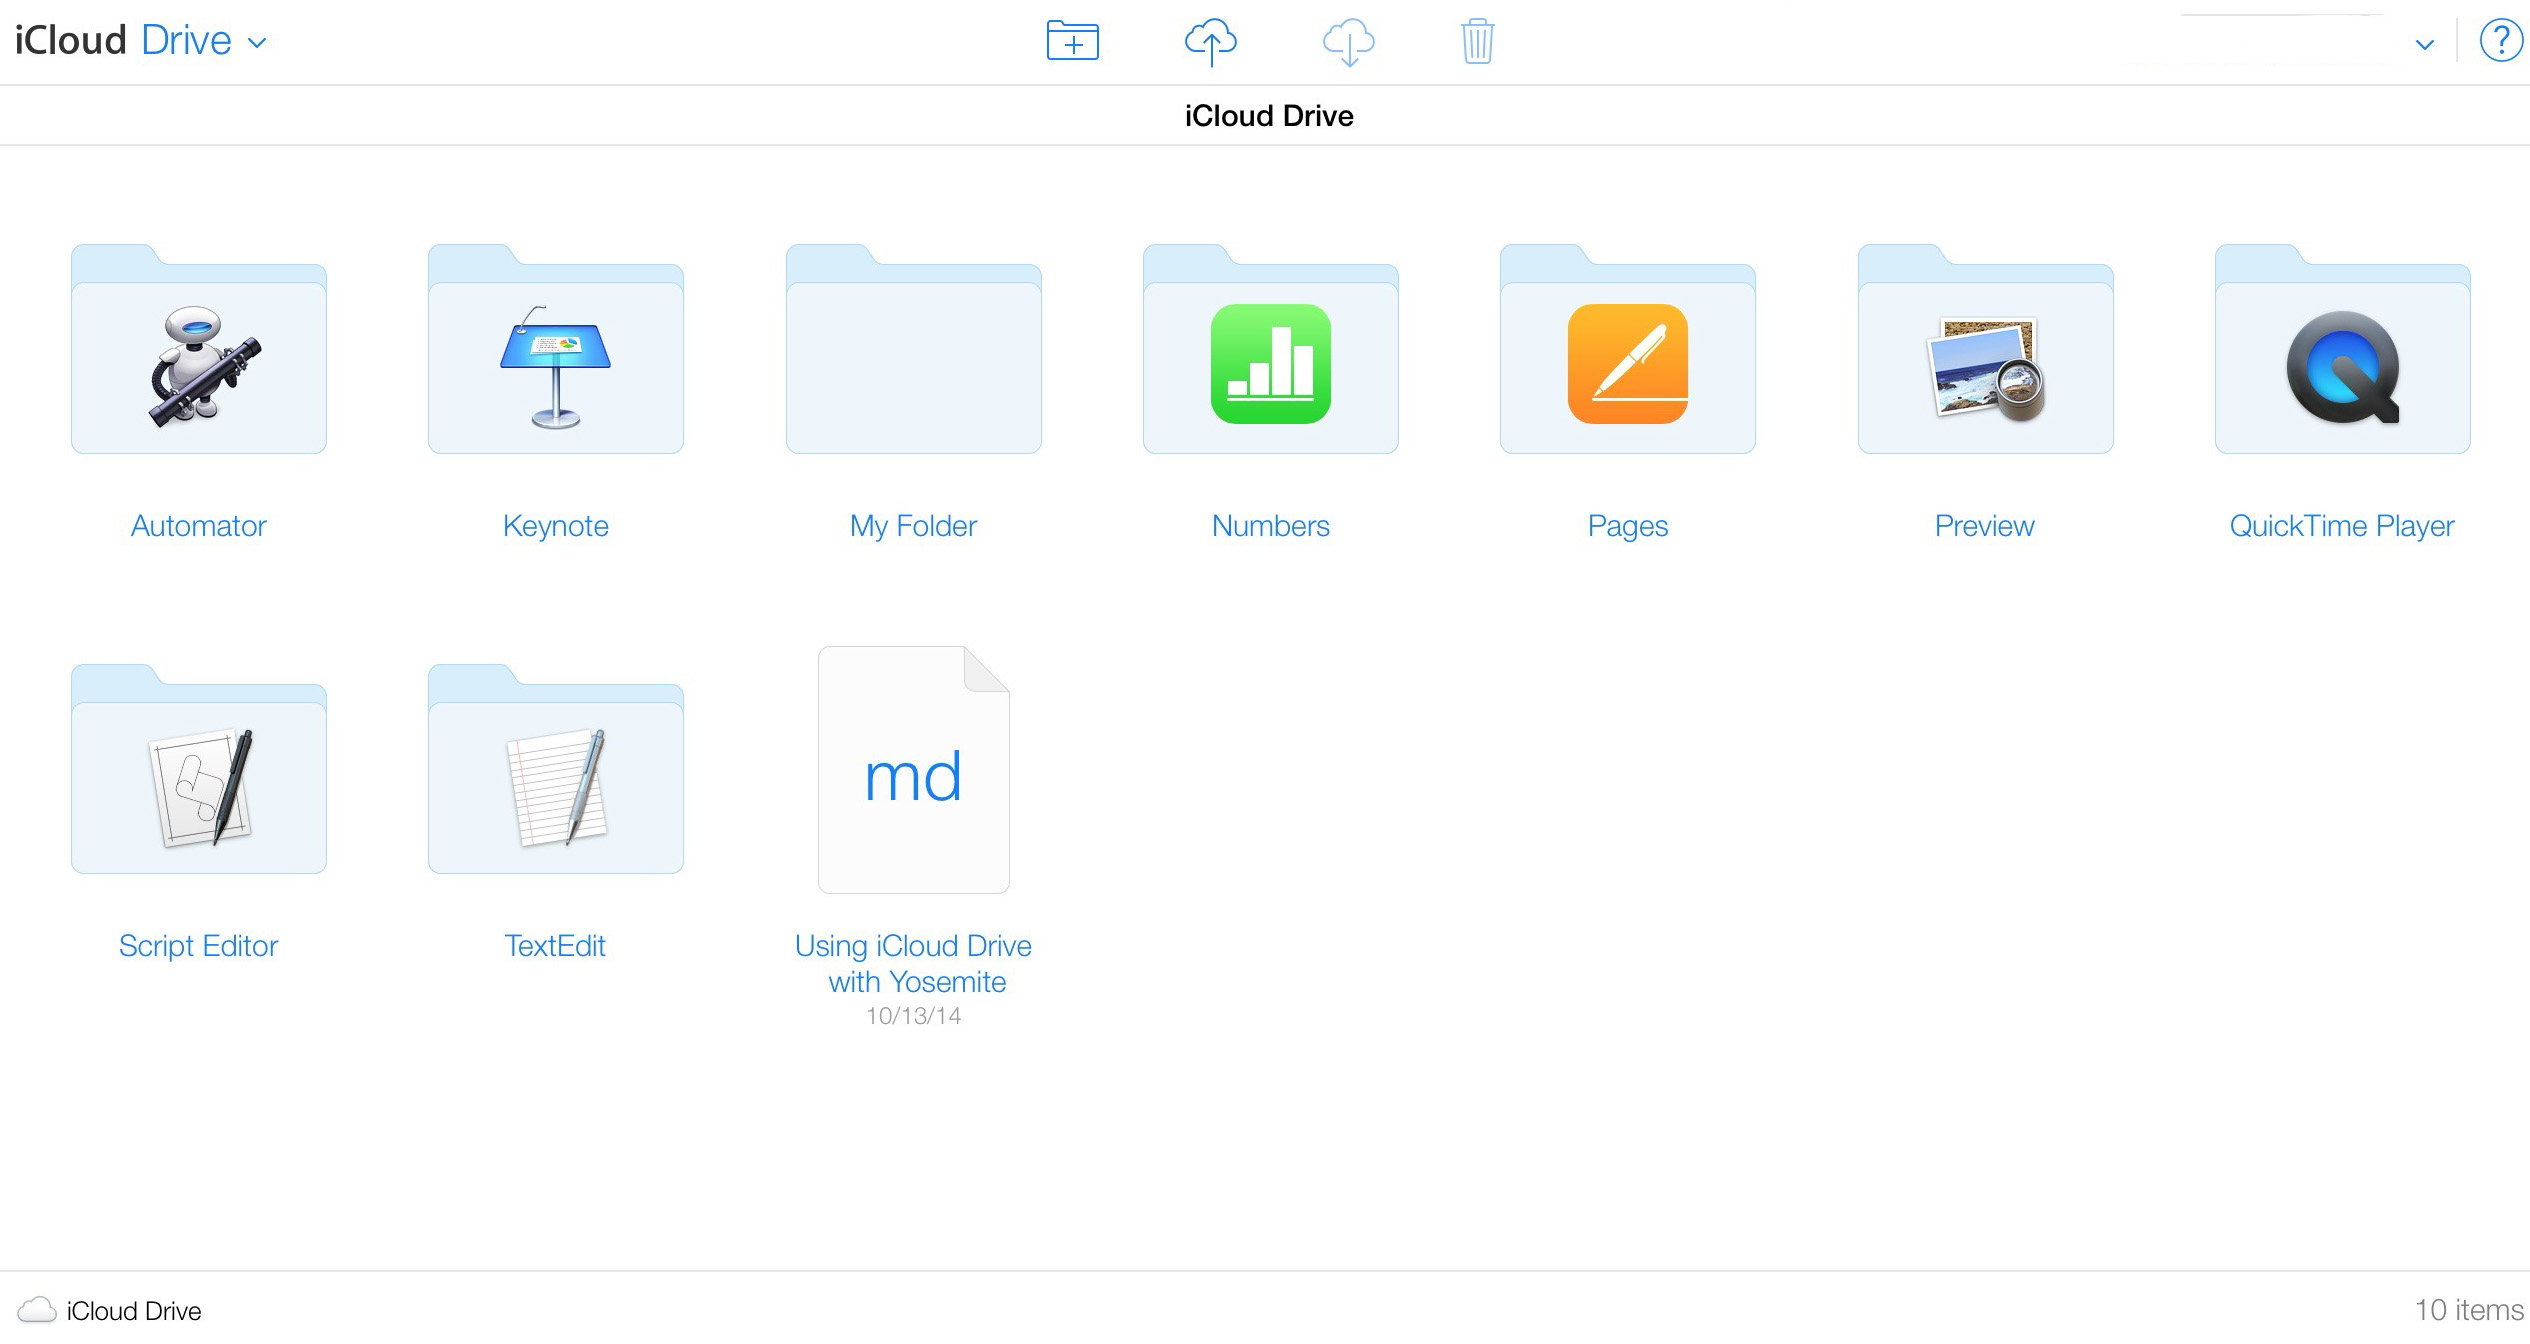 iCloud Drive Features and Interface